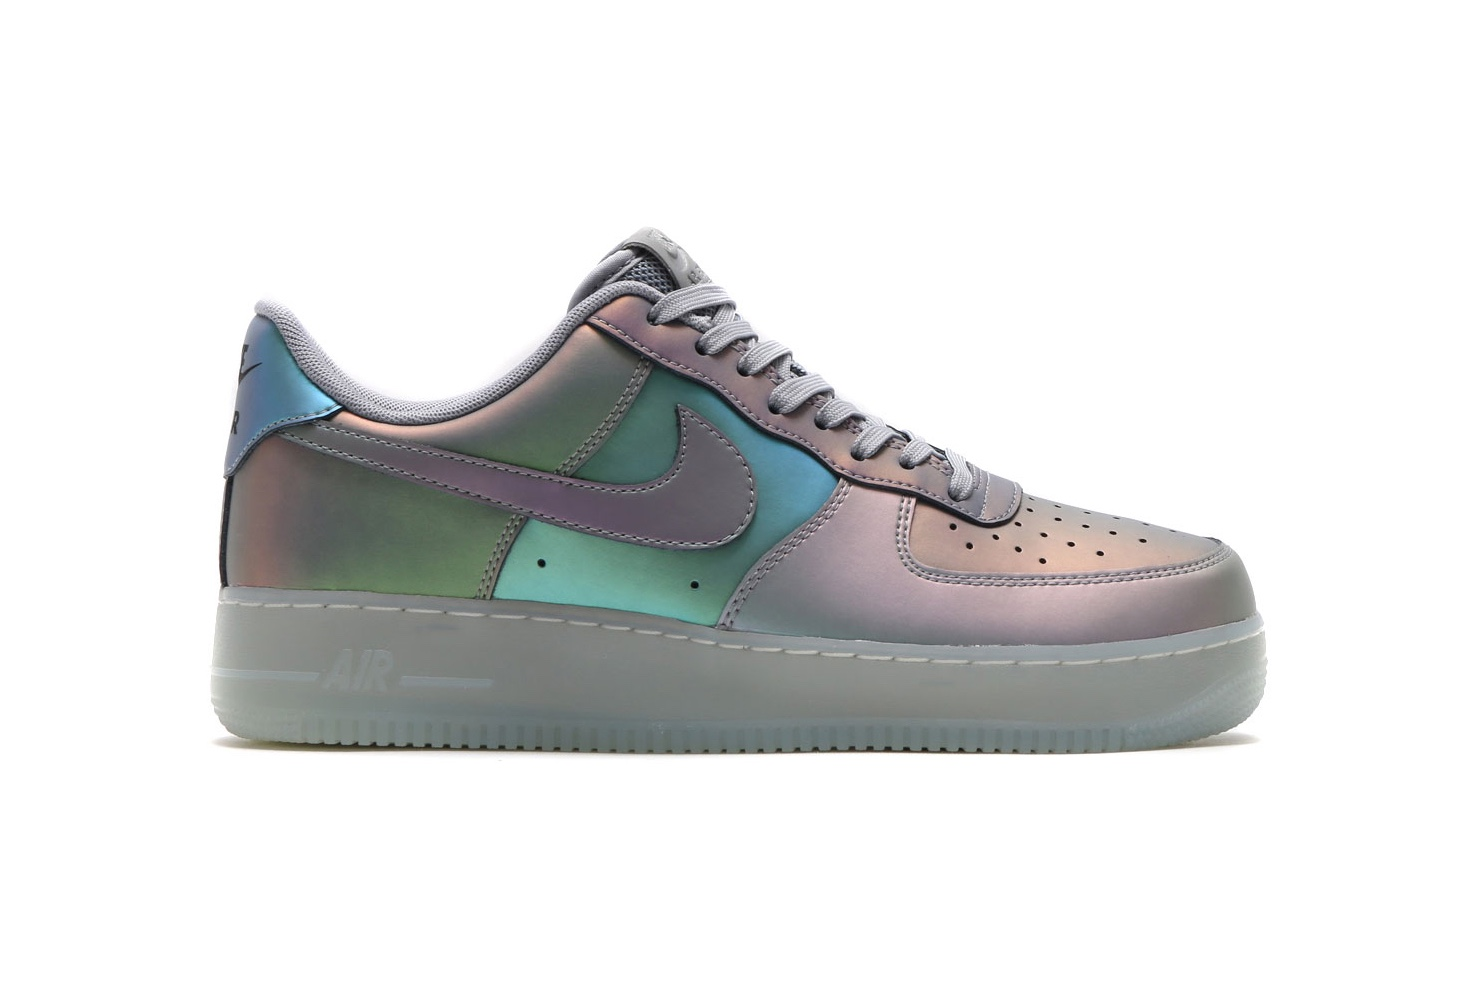 Nike Drops Air Force 1 Iridescent Makeover Trio [SneakPeak] http 2F2Fhypebeast